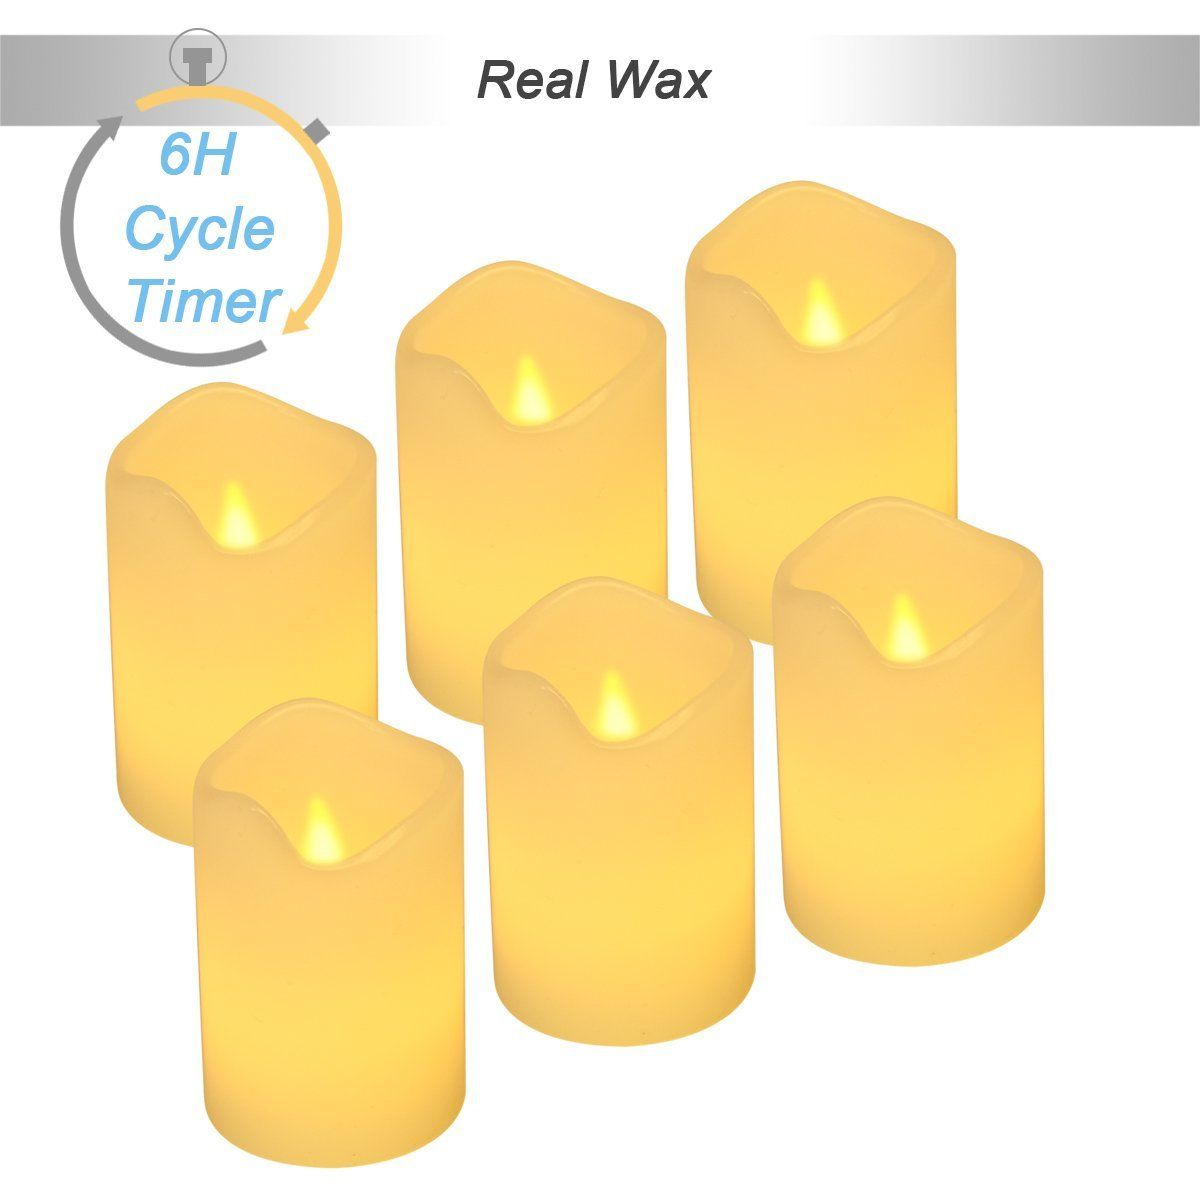 Flameless Votive Candles Real Wax 6H Timerflickering Real Wax Flameless Tealights Candles